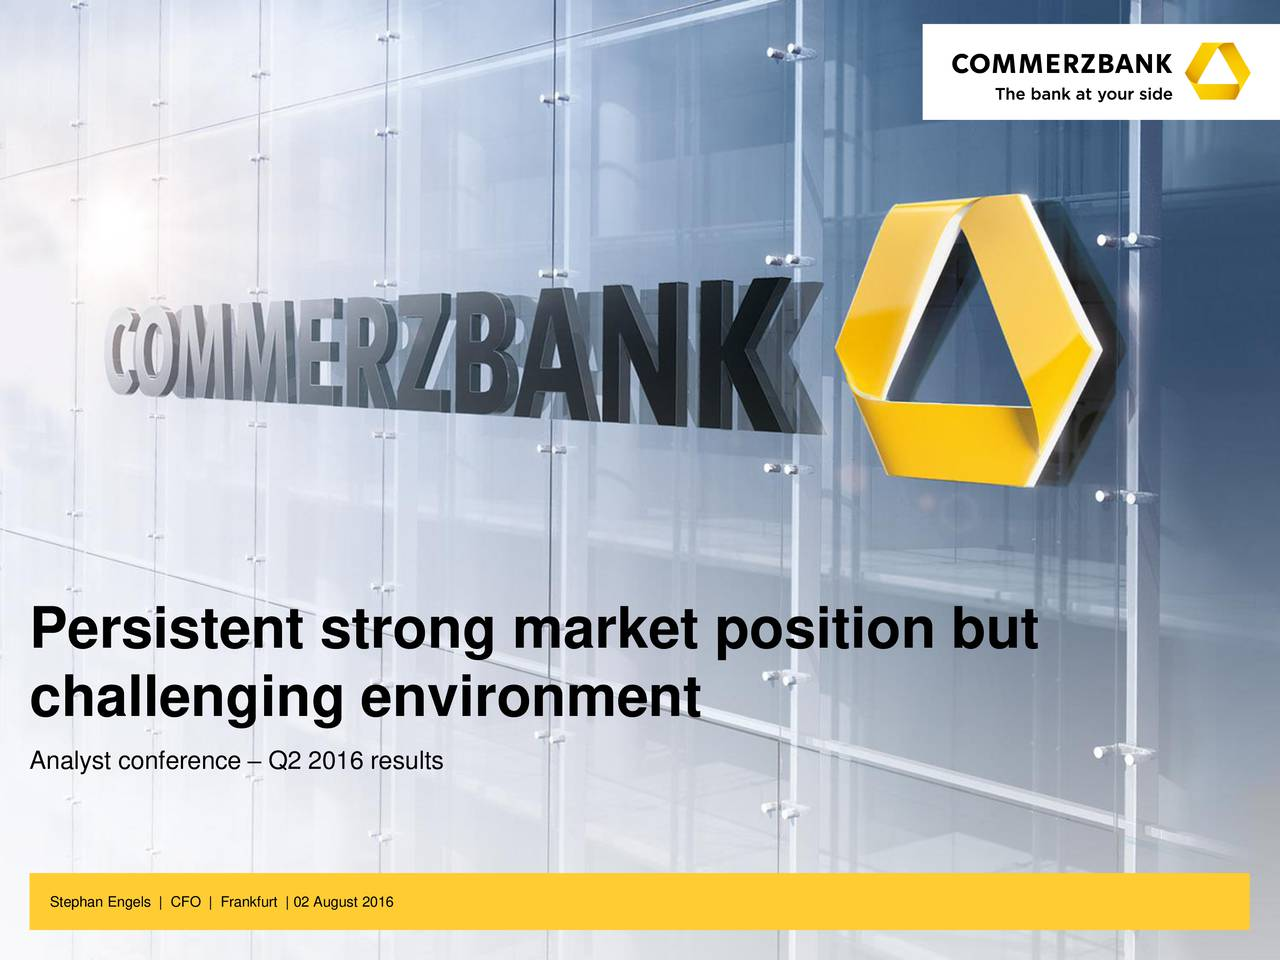 challenging environment Analyst conference  Q2 2016 results Stephan Engels | CFO | Frankfurt | 02 August 2016